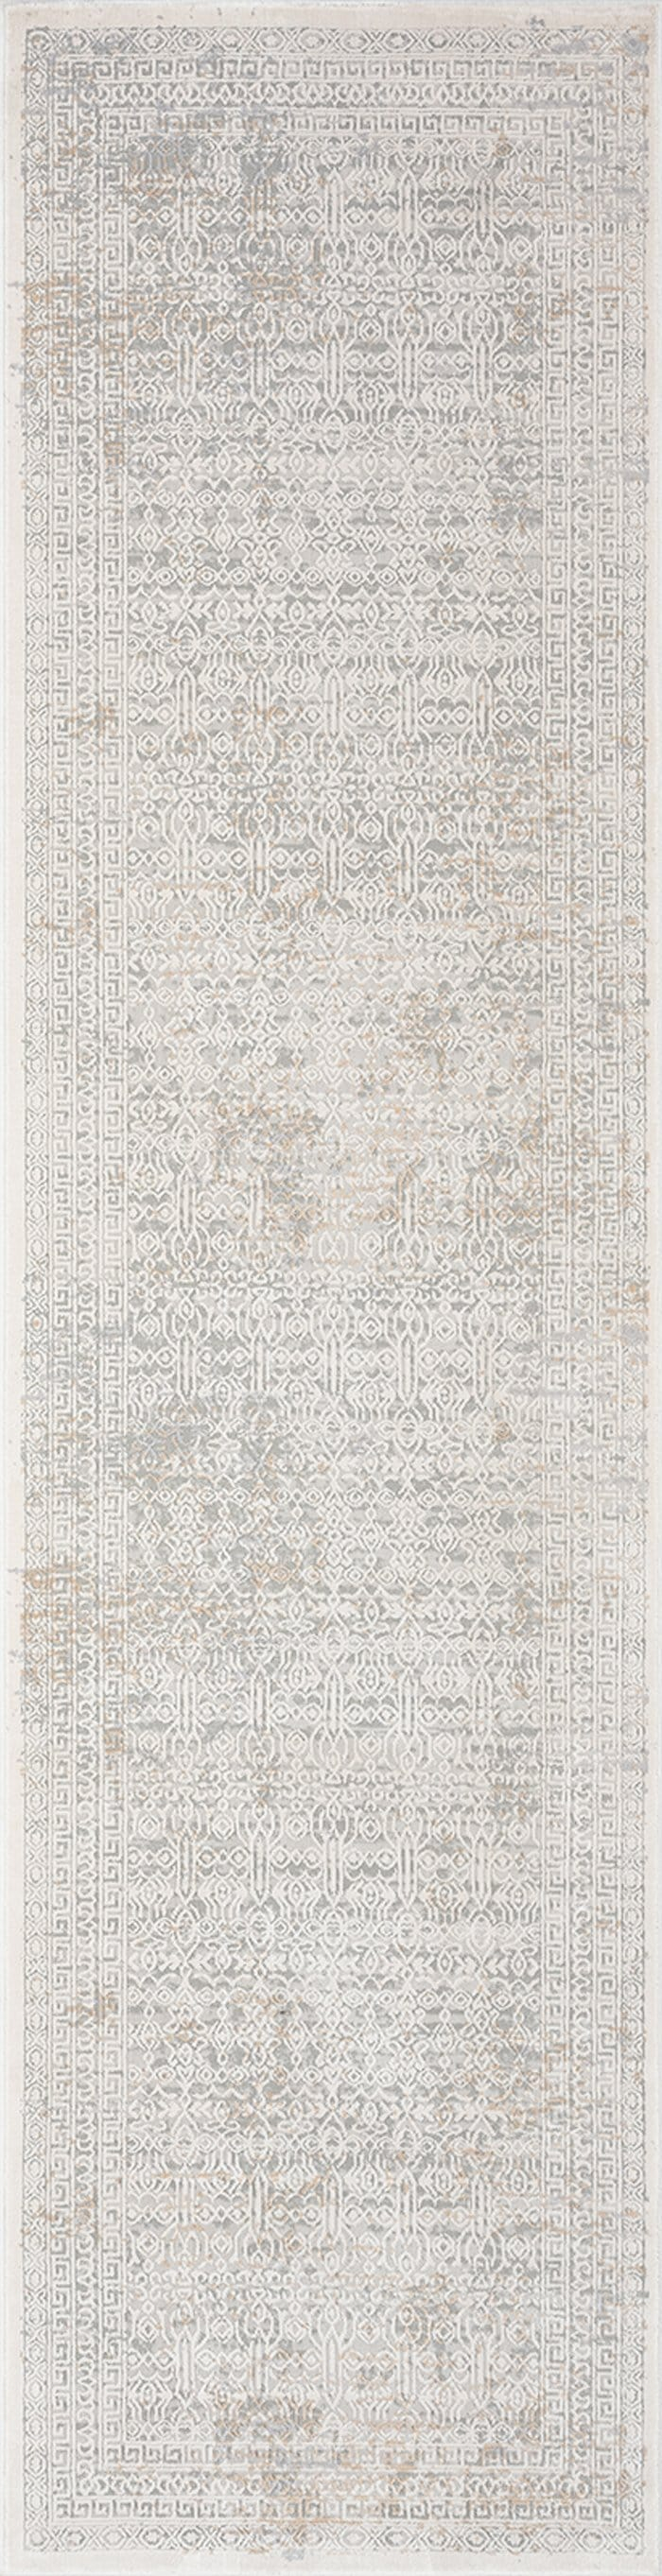 Seda Cream Ivory and Grey Traditional Floral Runner Rug